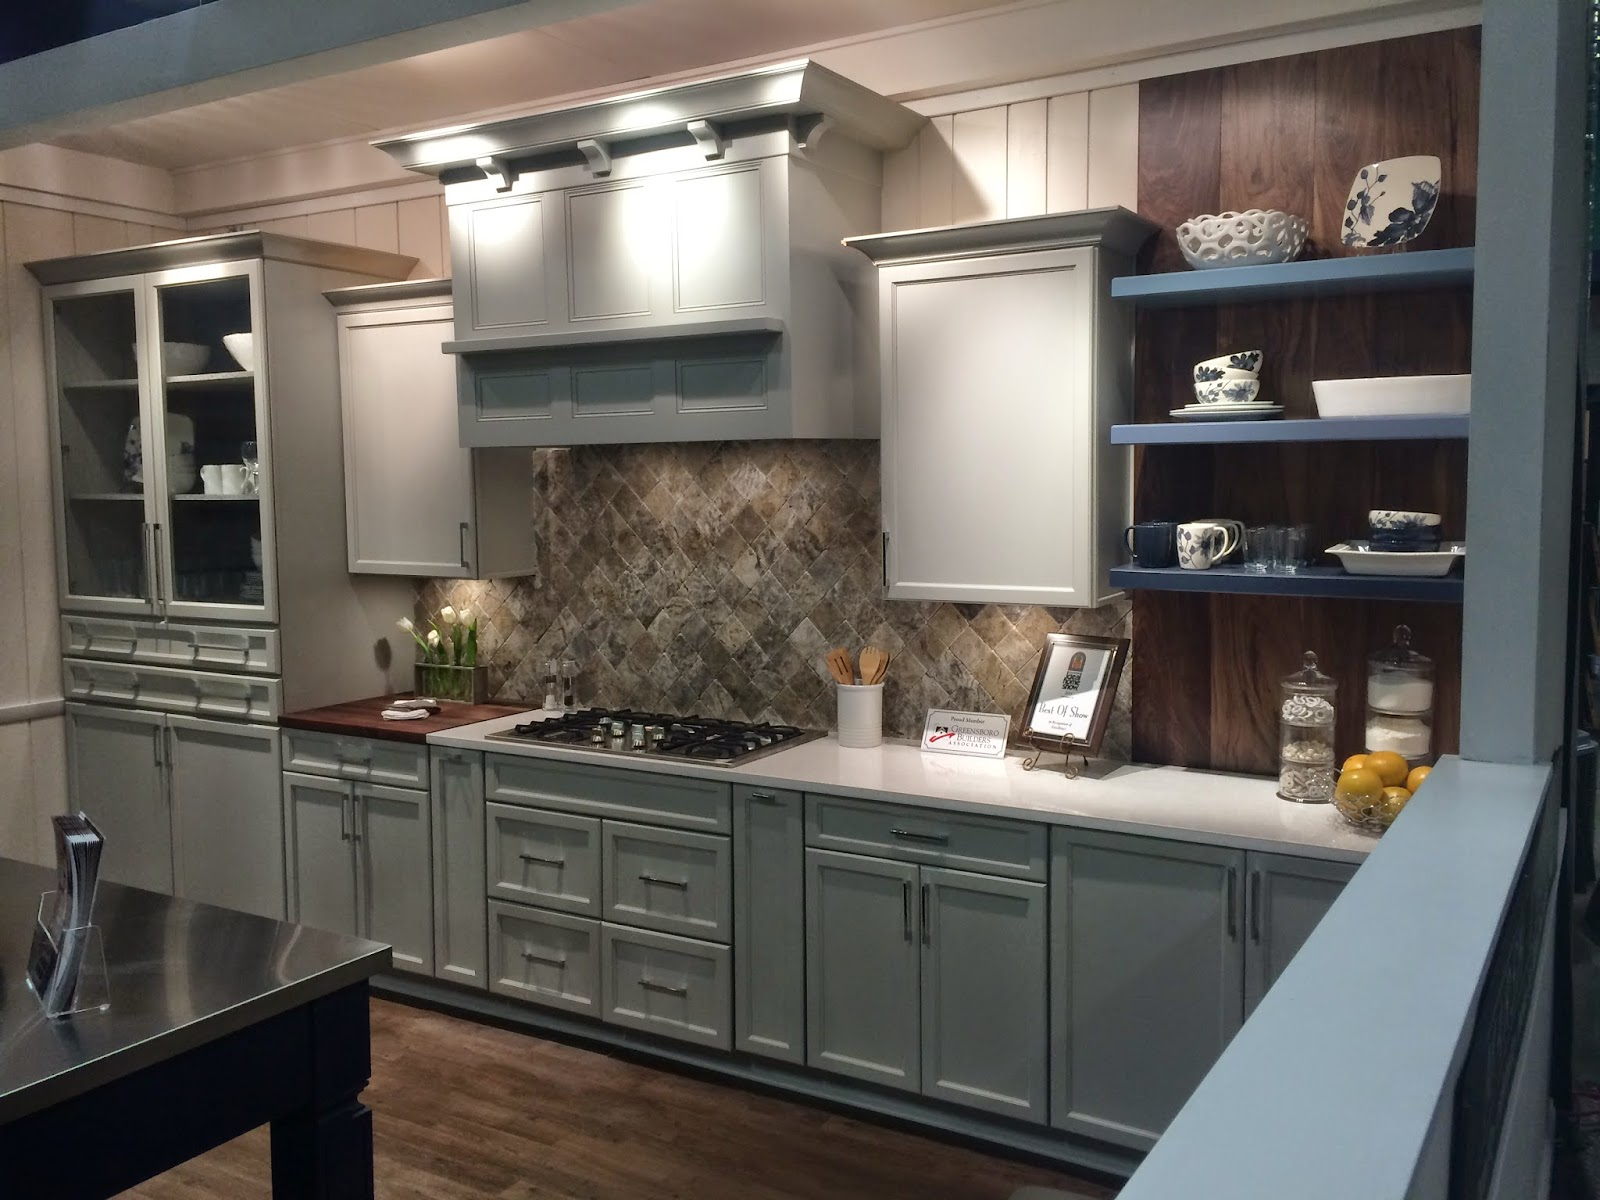 The yes weekly blog marsh kitchens wins best in show Bathroom cabinets greensboro nc